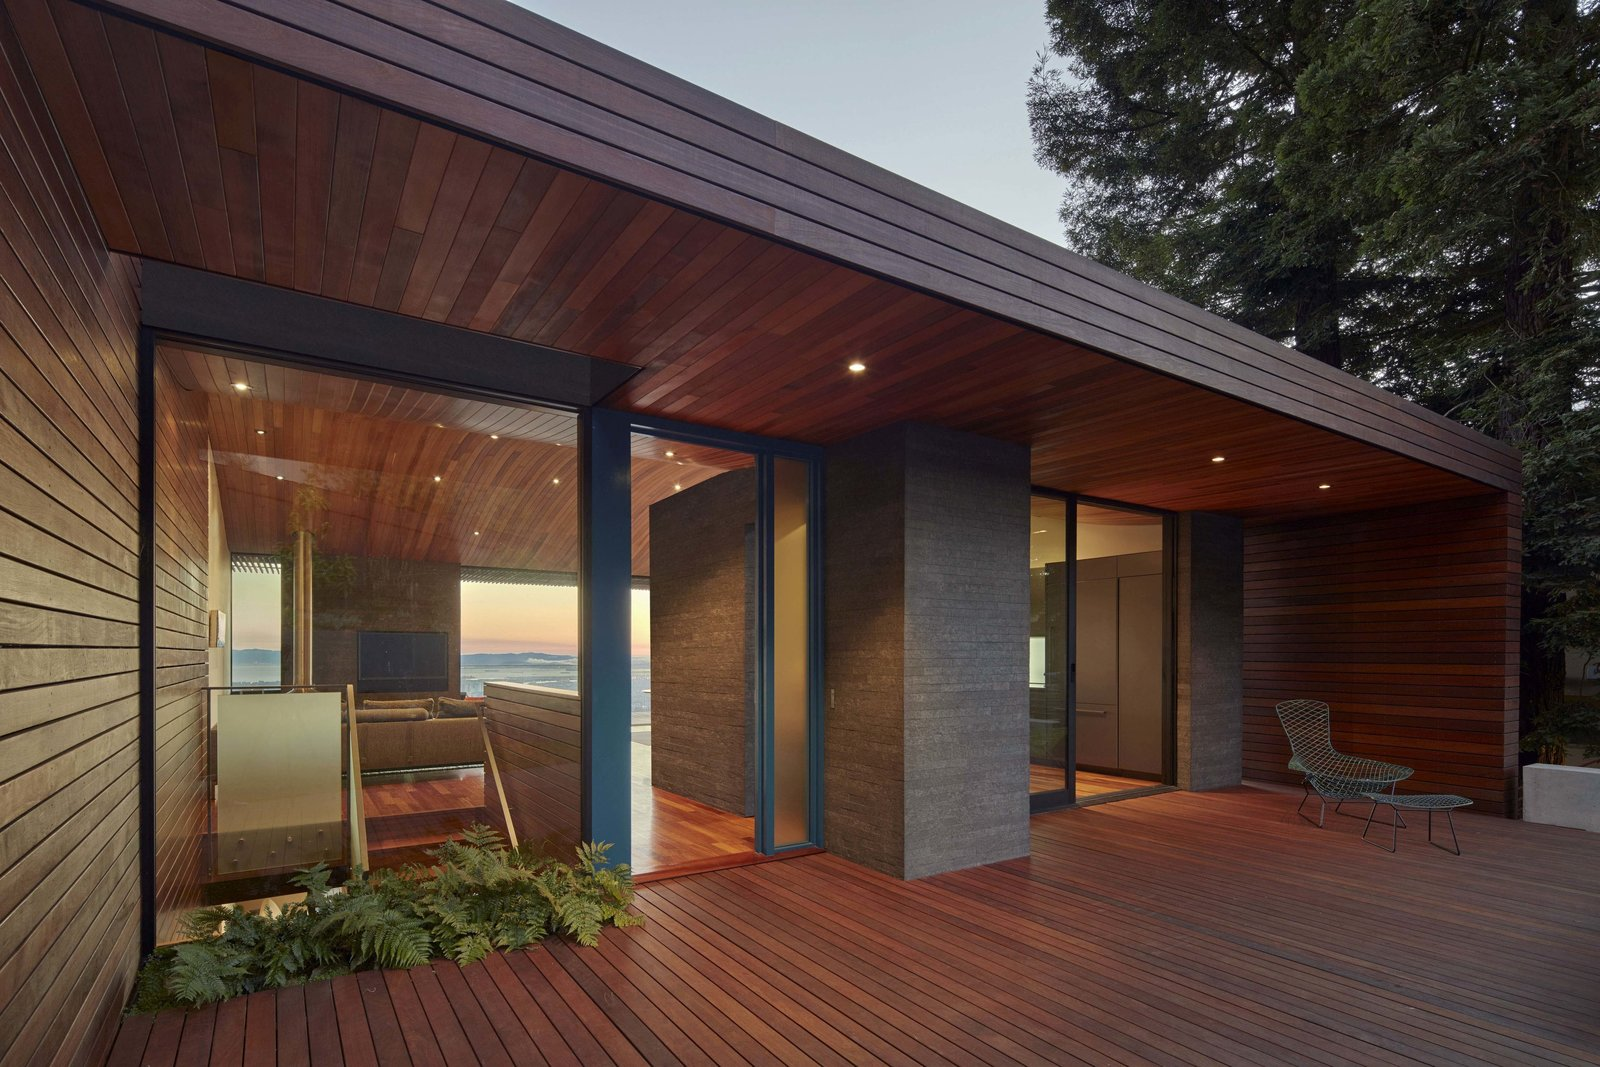 Outdoor, Front Yard, Shrubs, Small Patio, Porch, Deck, and Wood Patio, Porch, Deck Entry at dusk  Skyline House by Terry & Terry Architecture